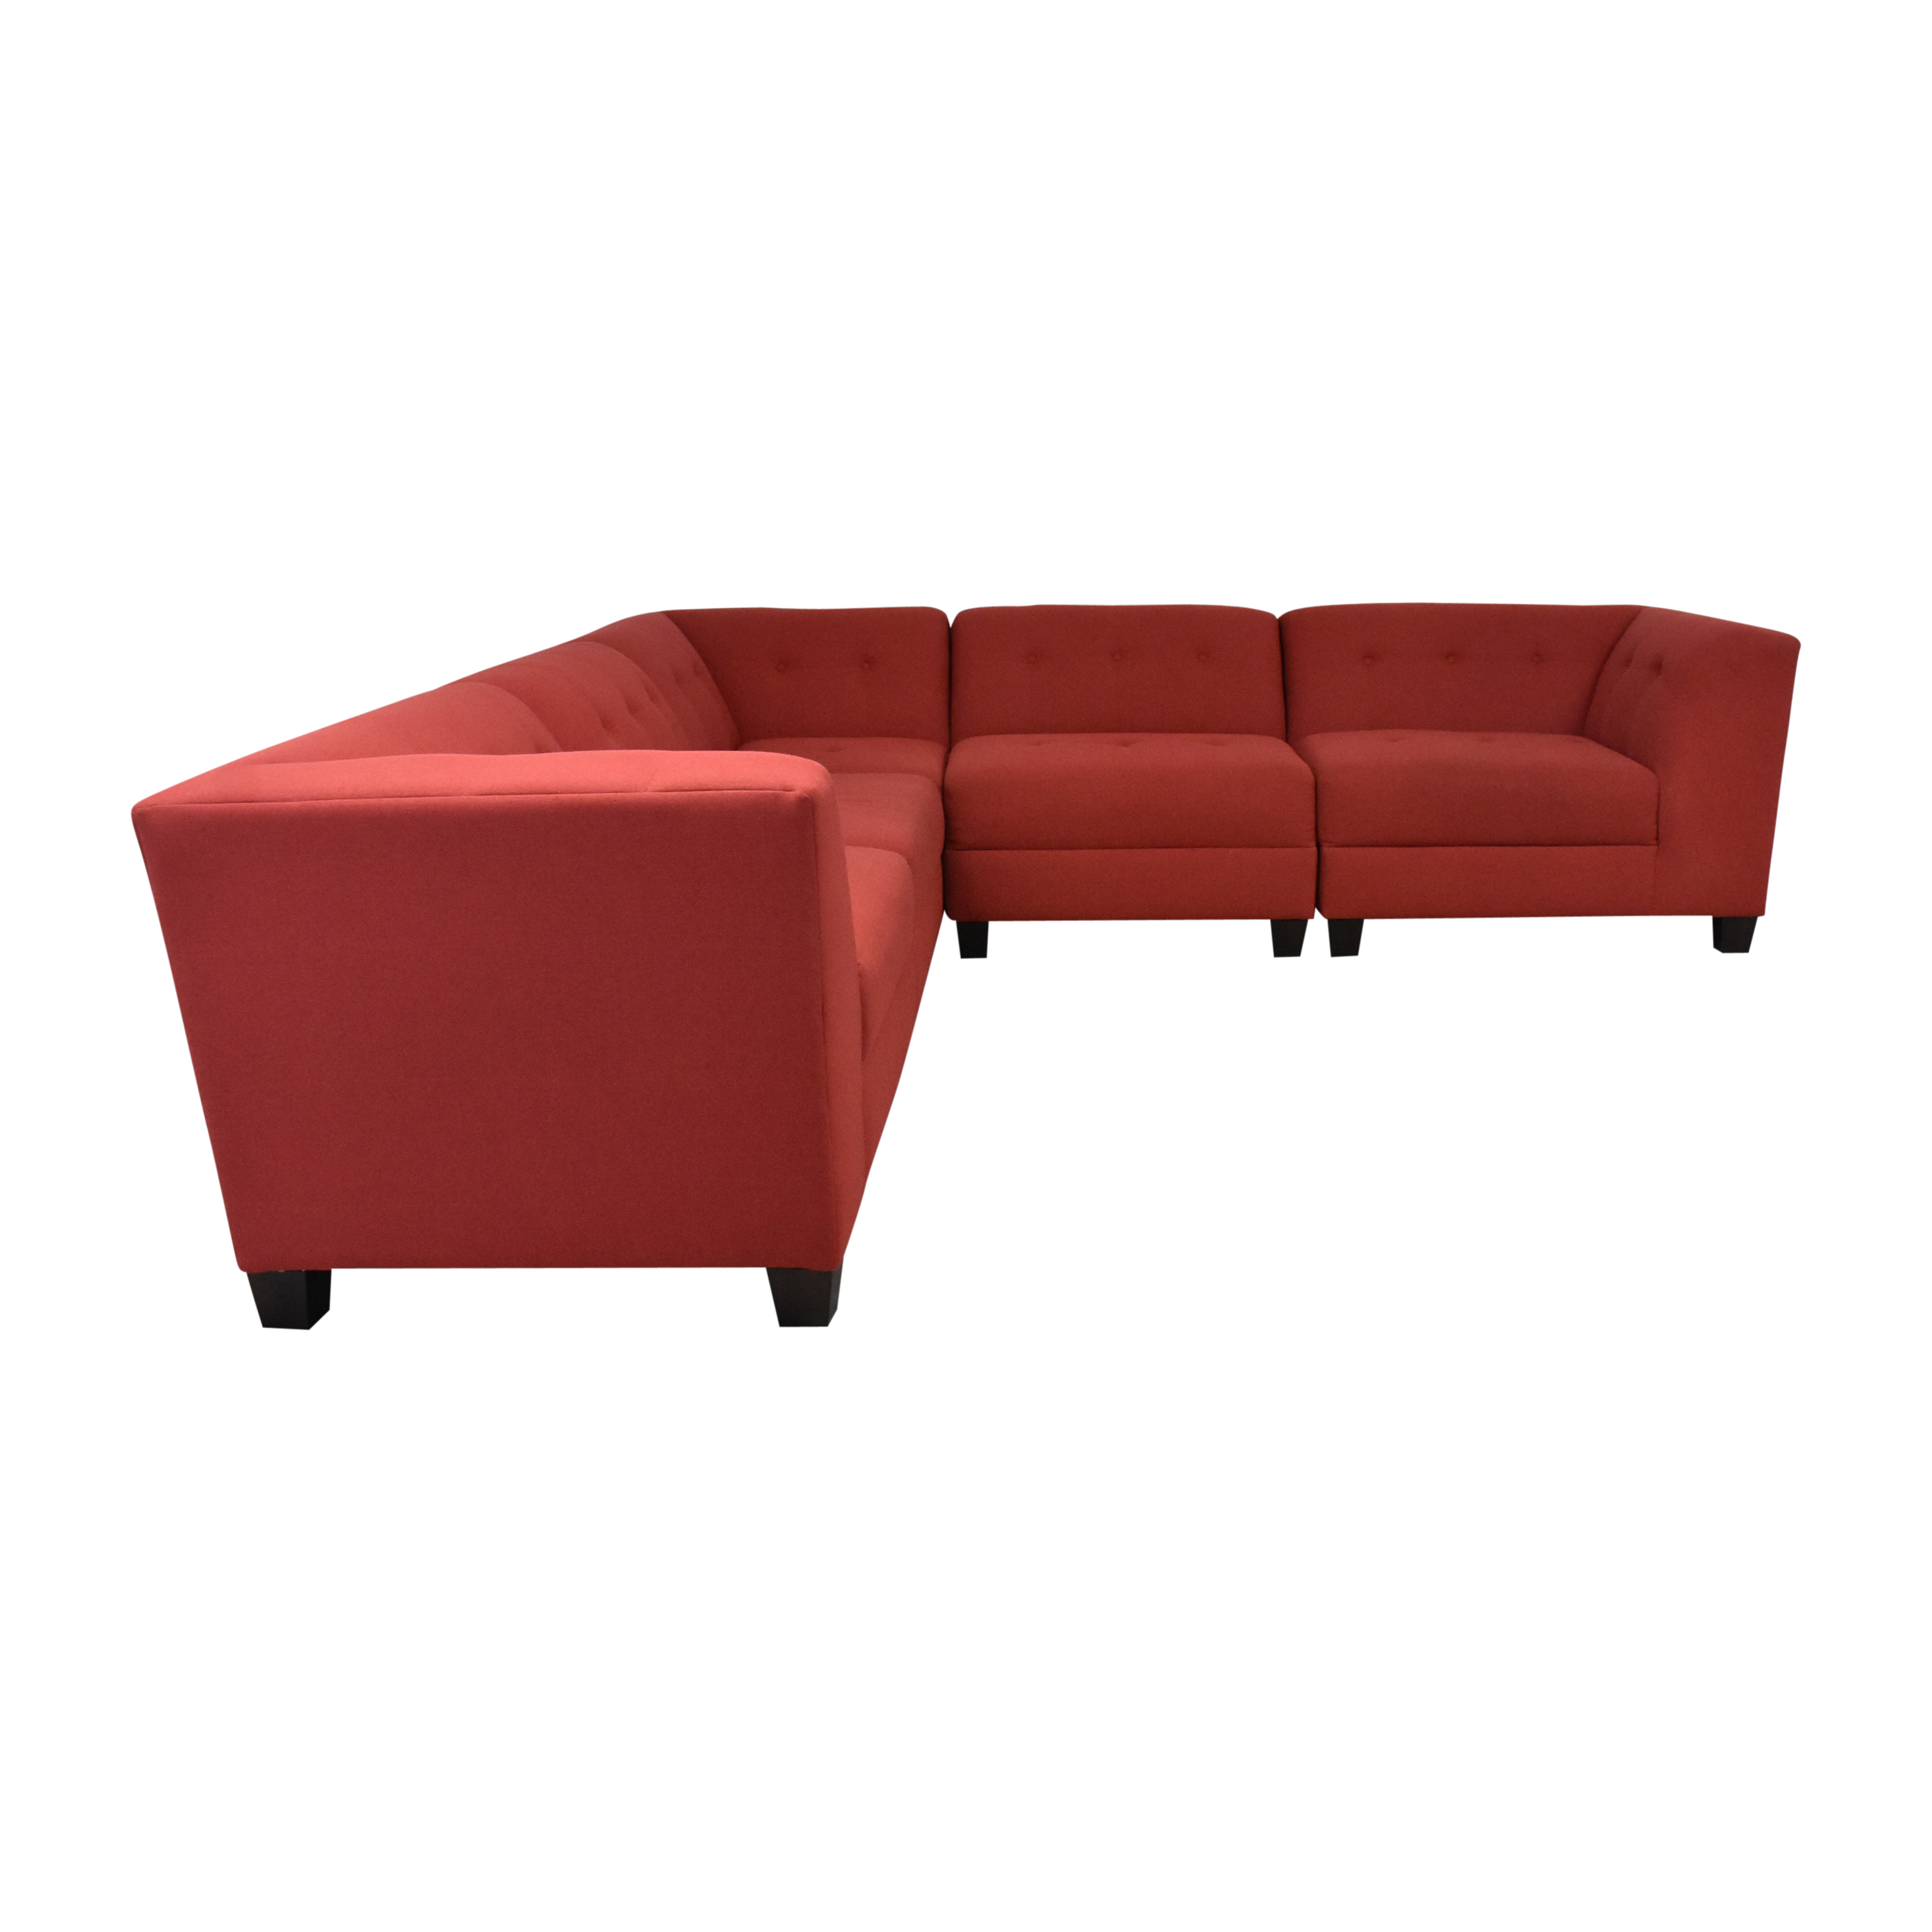 England Furniture England Furniture Miller Five Piece Sectional Sofa with Ottoman nj